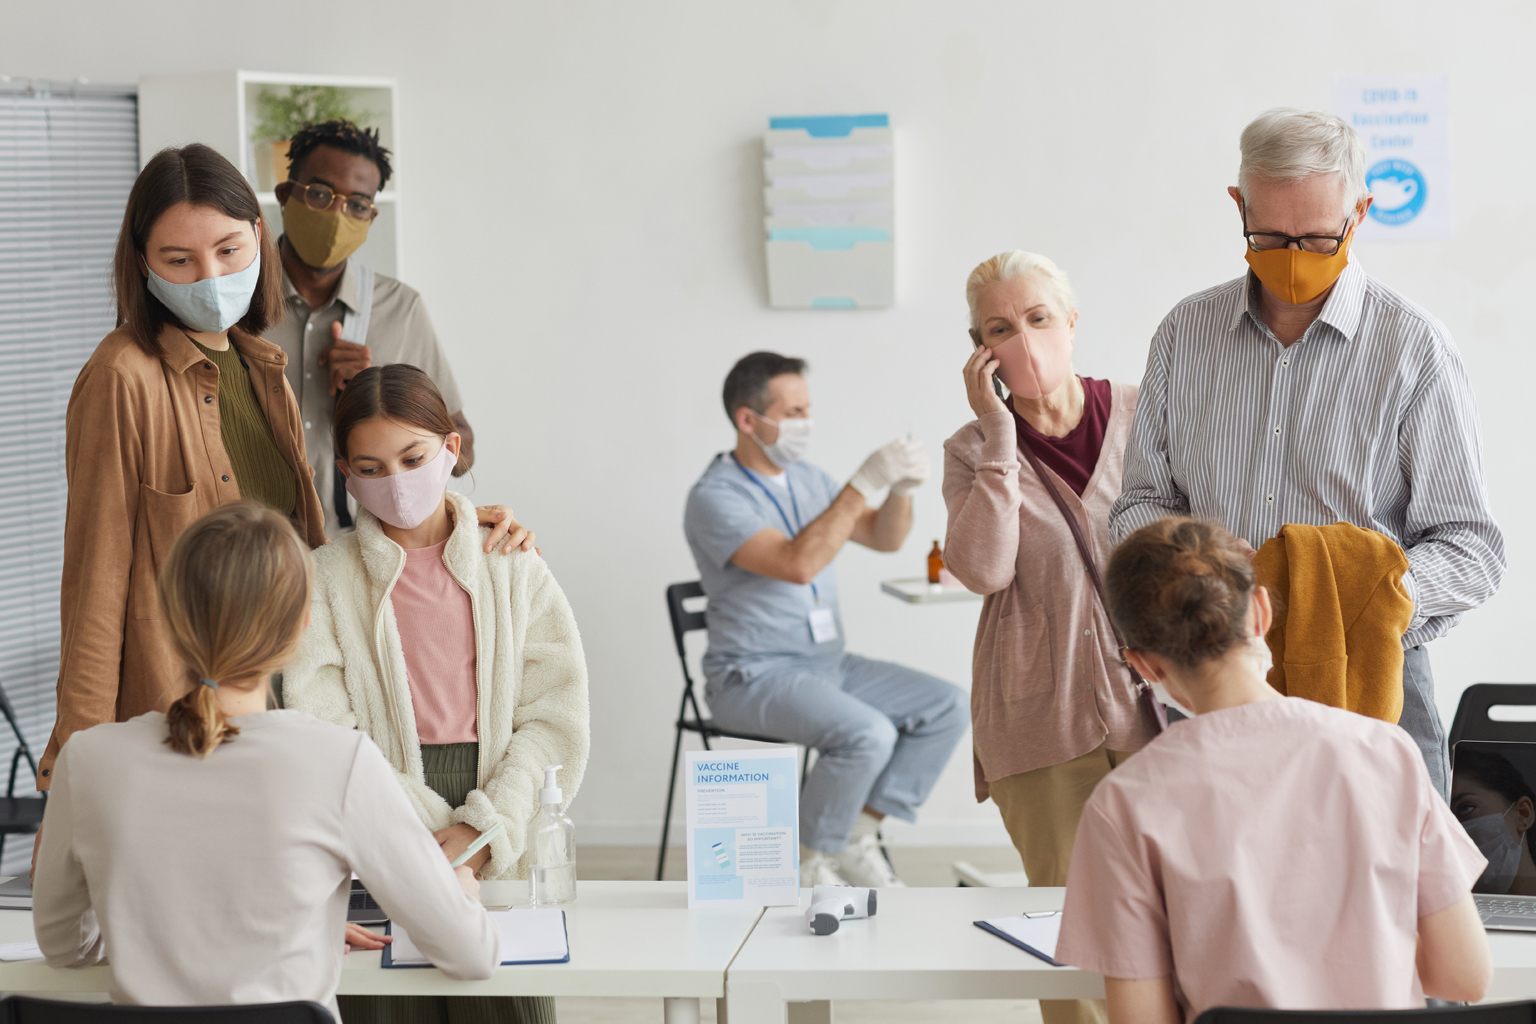 Group of patient wearing face masks, standing in lines at vaccine check in desk